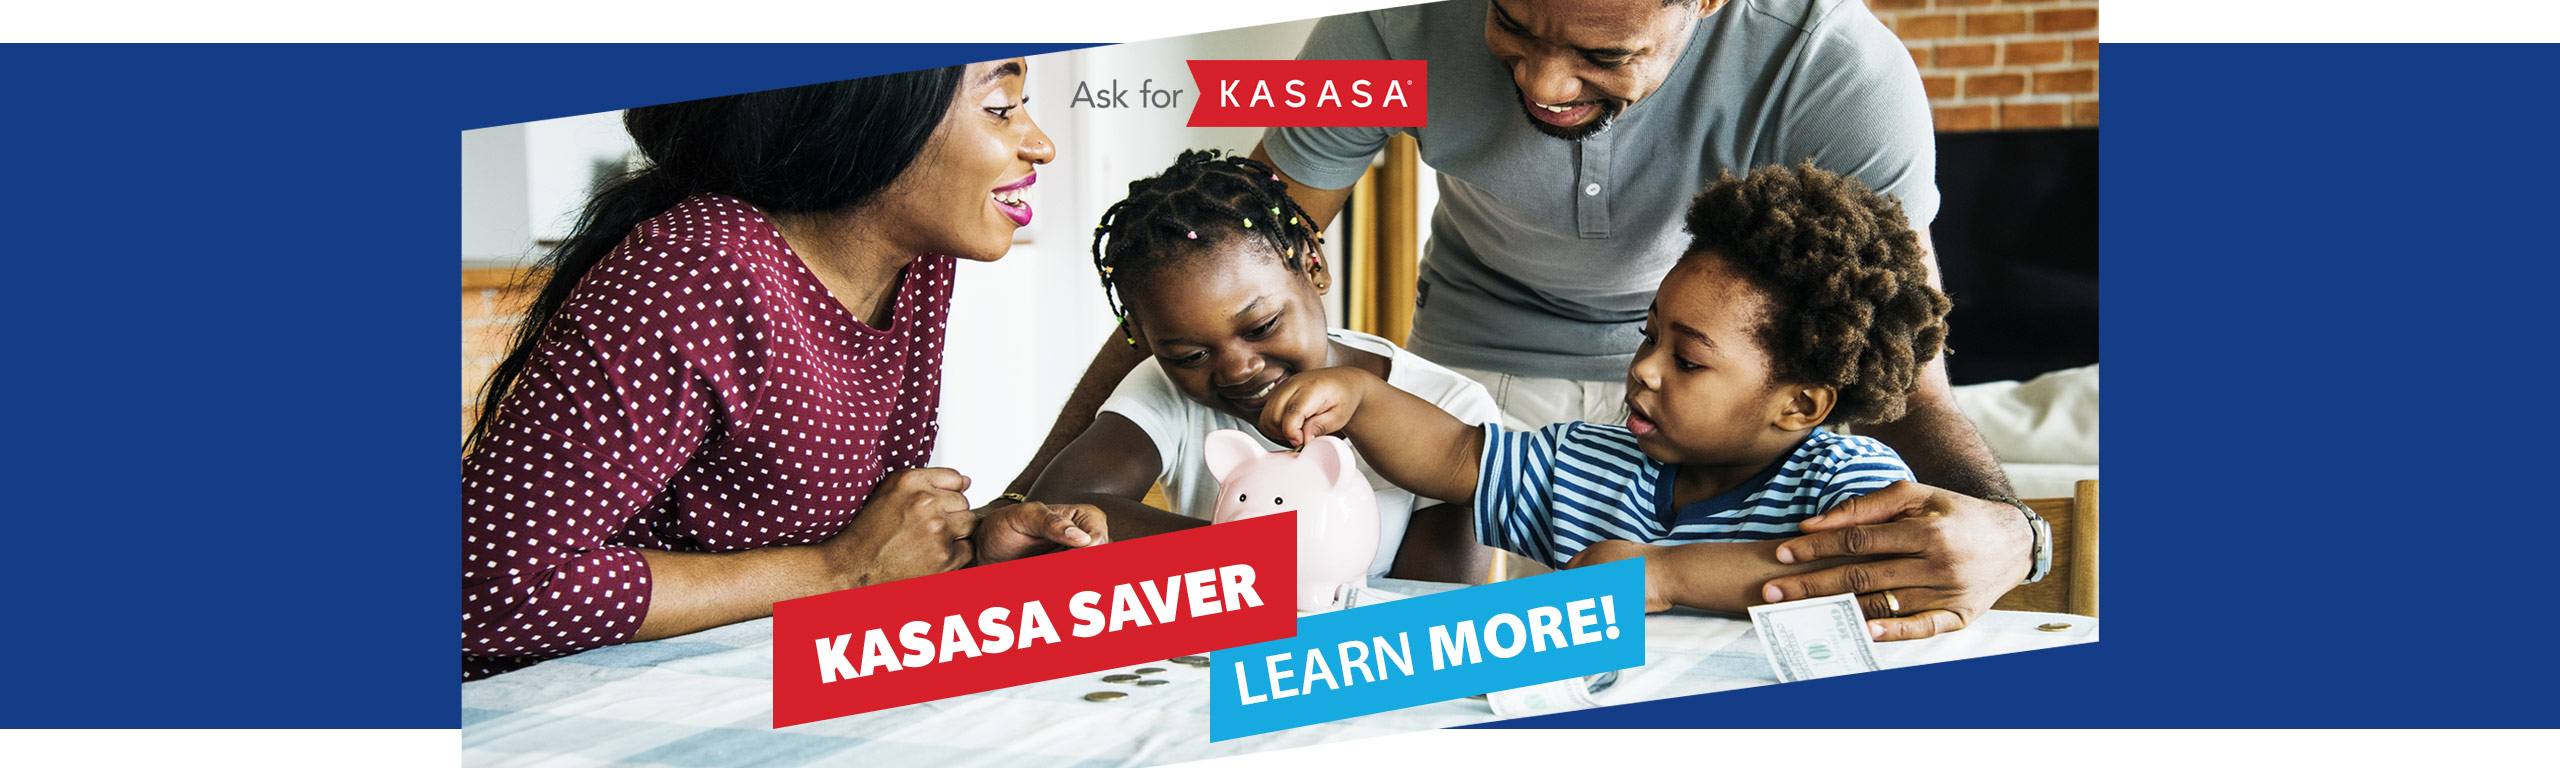 https://www.doverfcu.com/personal/personal-accounts/kasasa